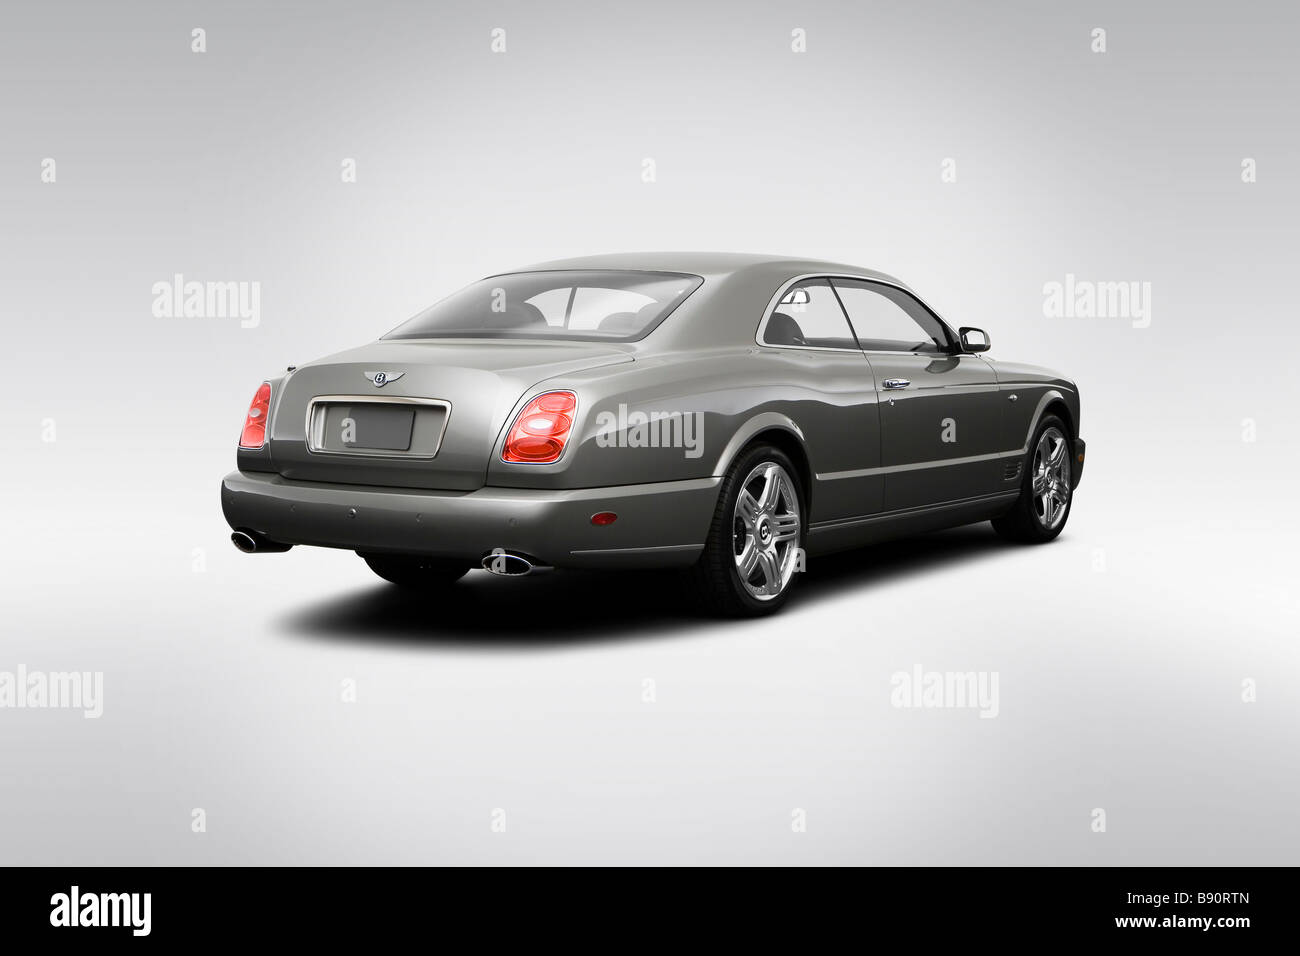 2009 Bentley Brooklands in grau - hintere Winkel Ansicht Stockbild